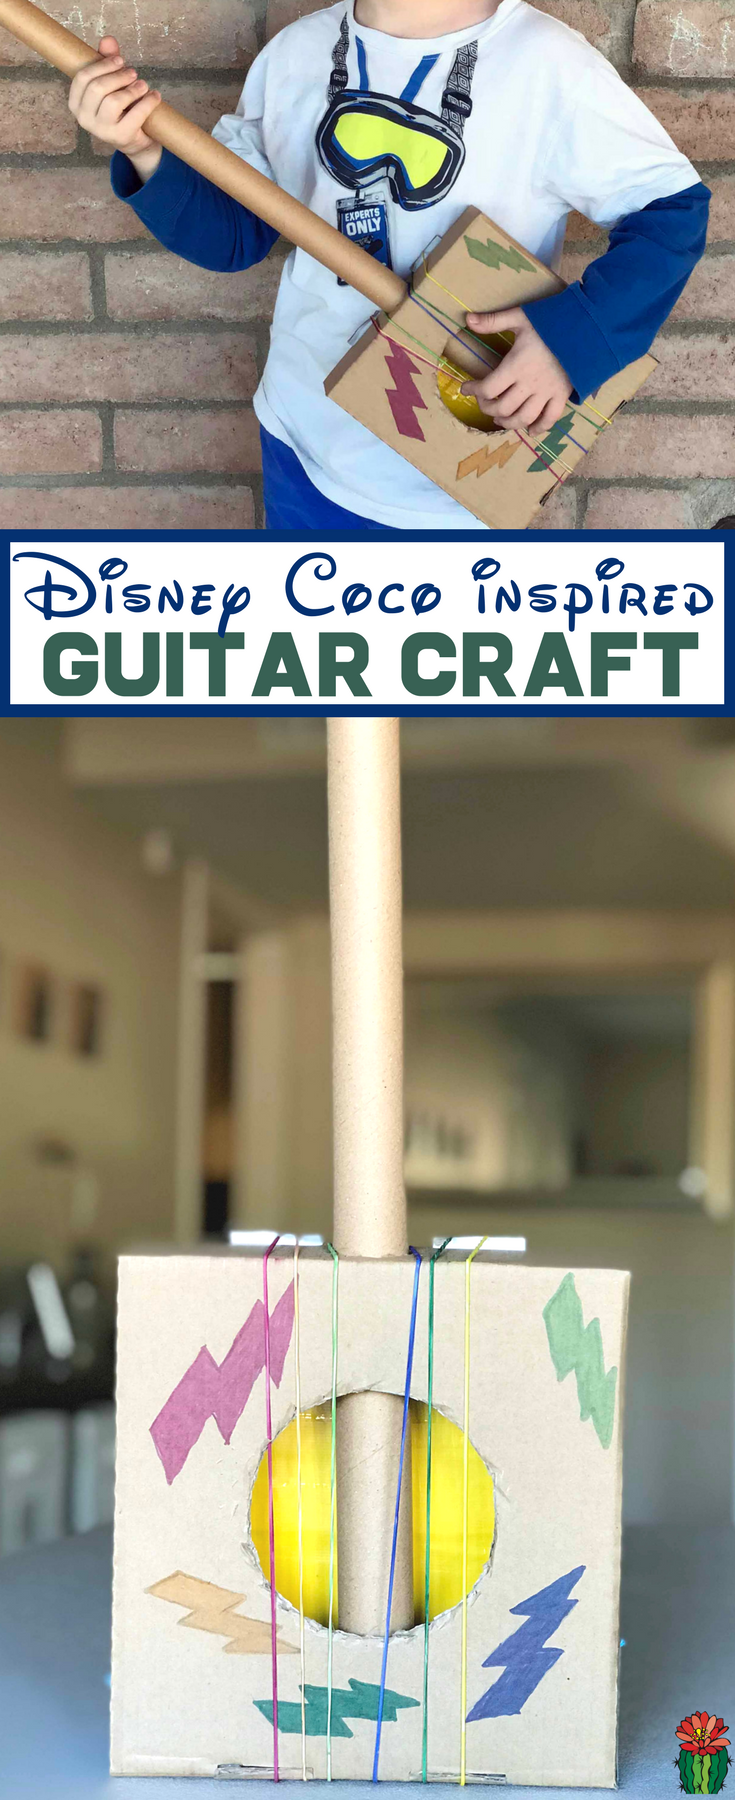 This Disney Coco Craft is perfectly themed, a DIY cardboard guitar! Miguel loves playing guitar so don't miss how to make a cardboard guitar for your little musician at home.